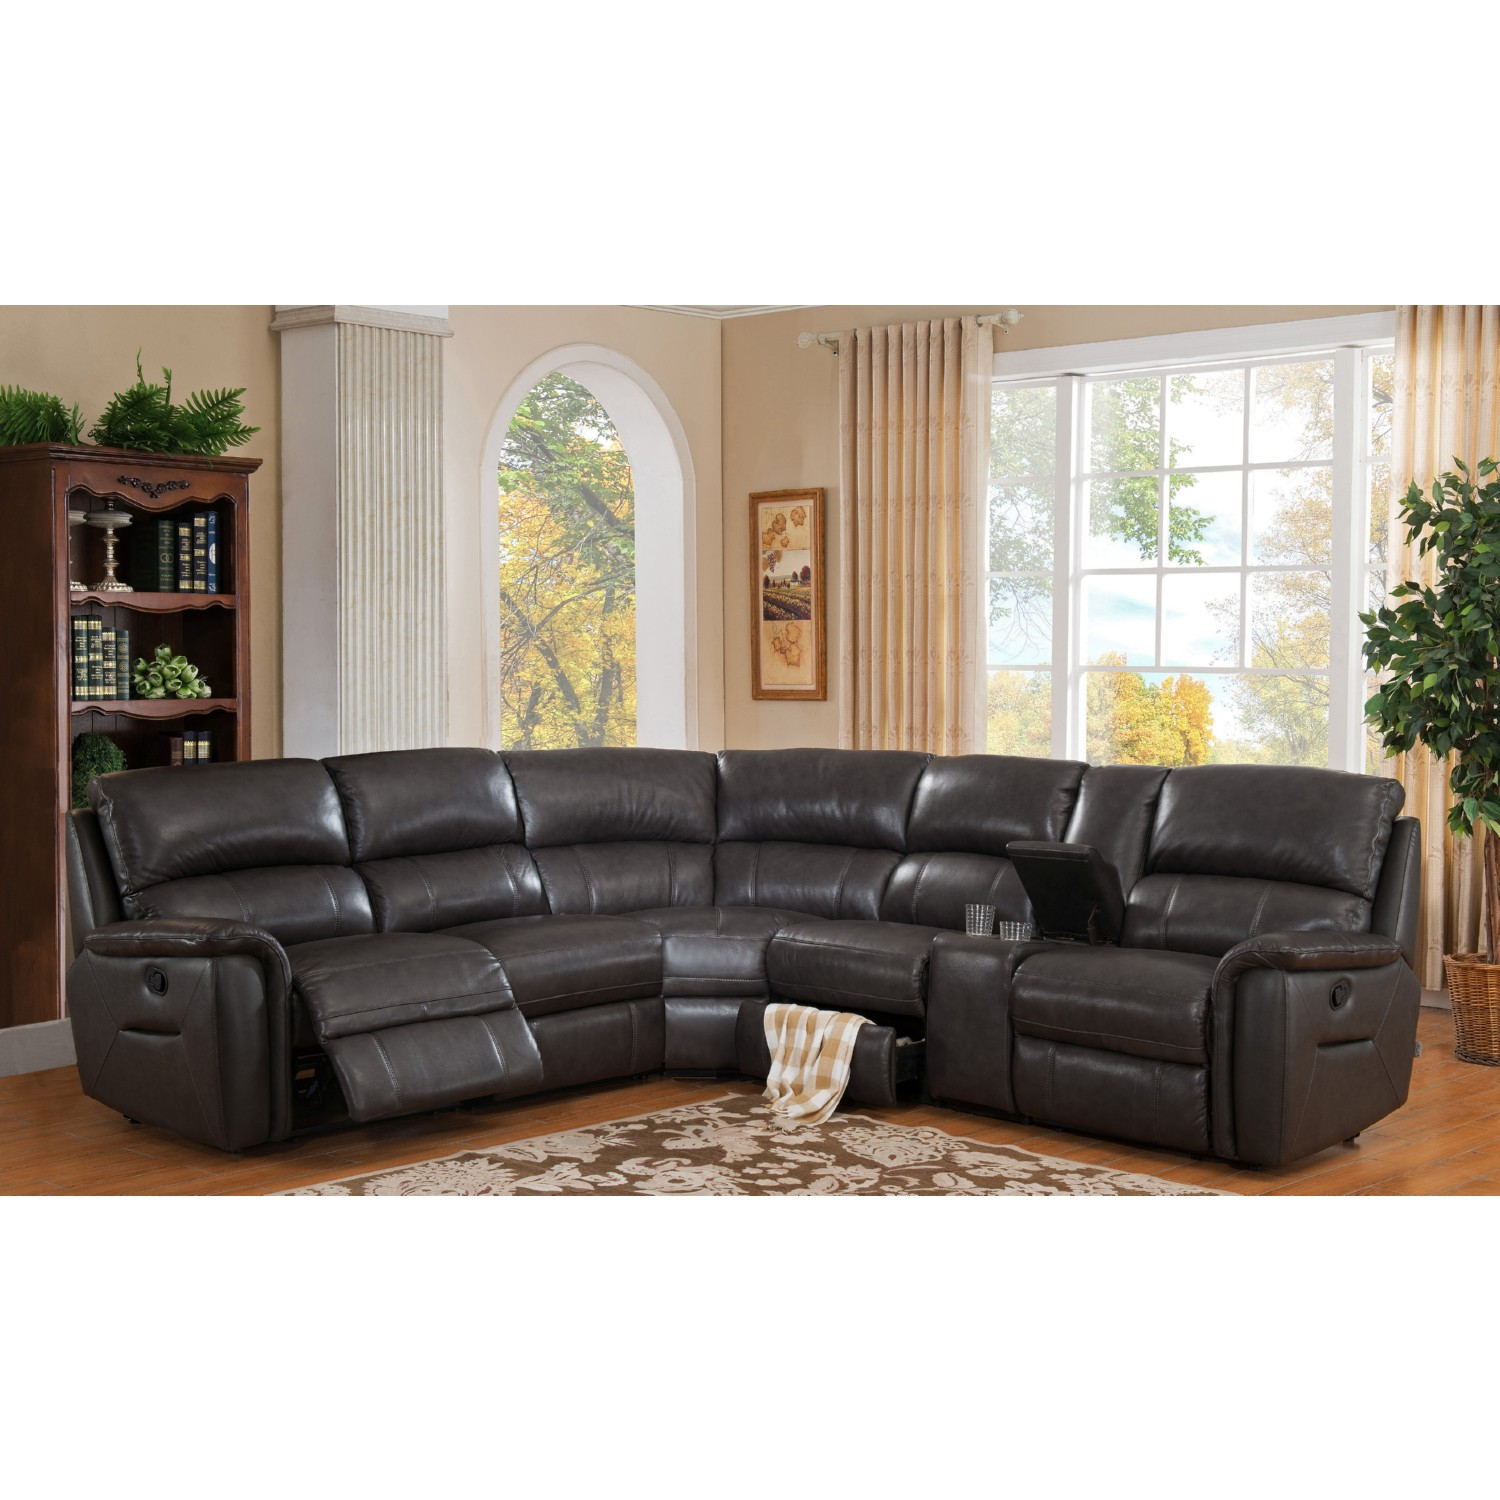 AMAX Leather C9909SECT2370 Camino 100% Leather Reclining Sofa